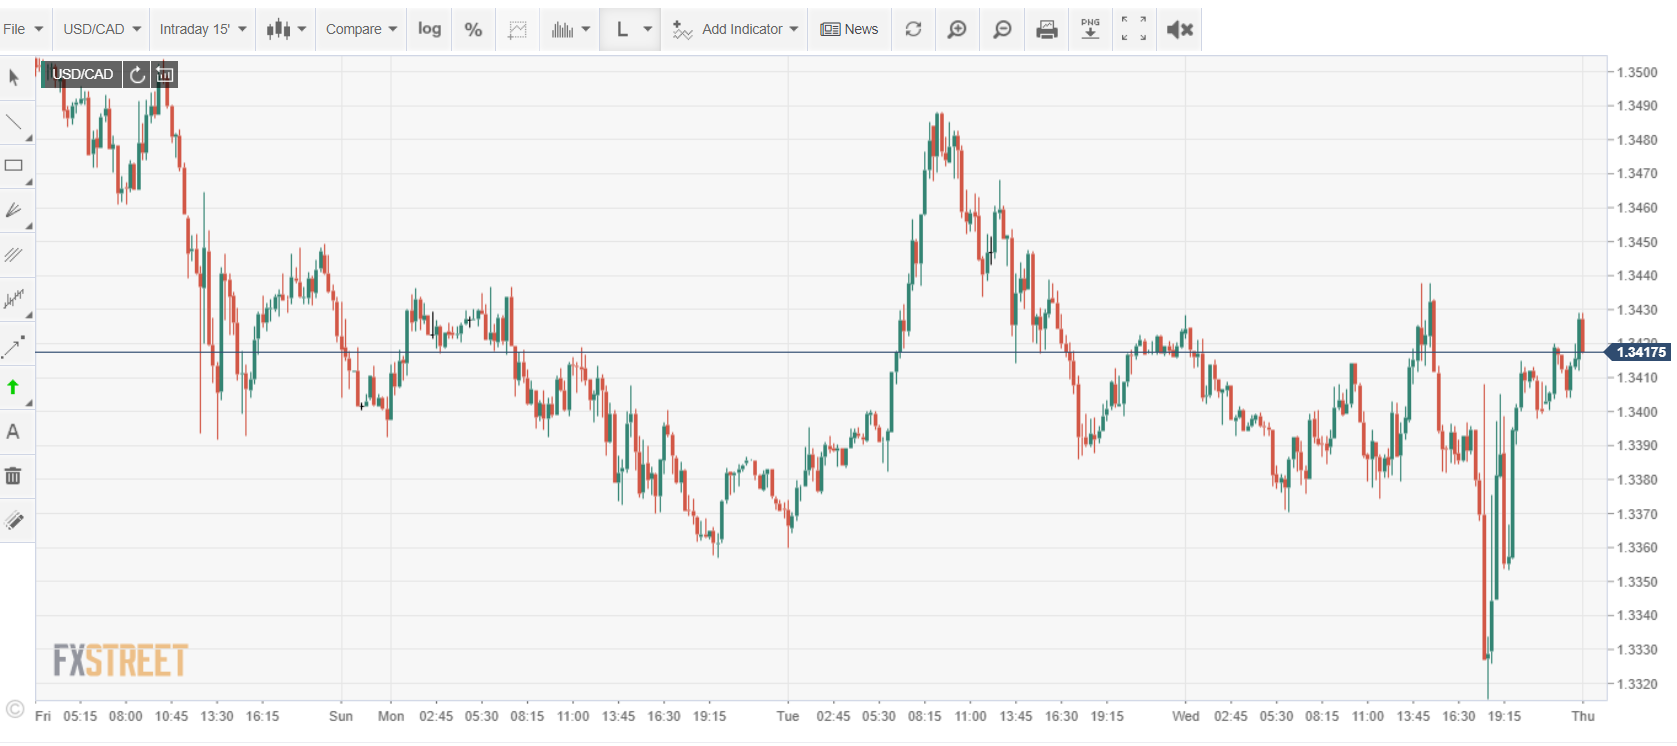 USDCAD FXSTREET Intraday Chart - 11 June 2020